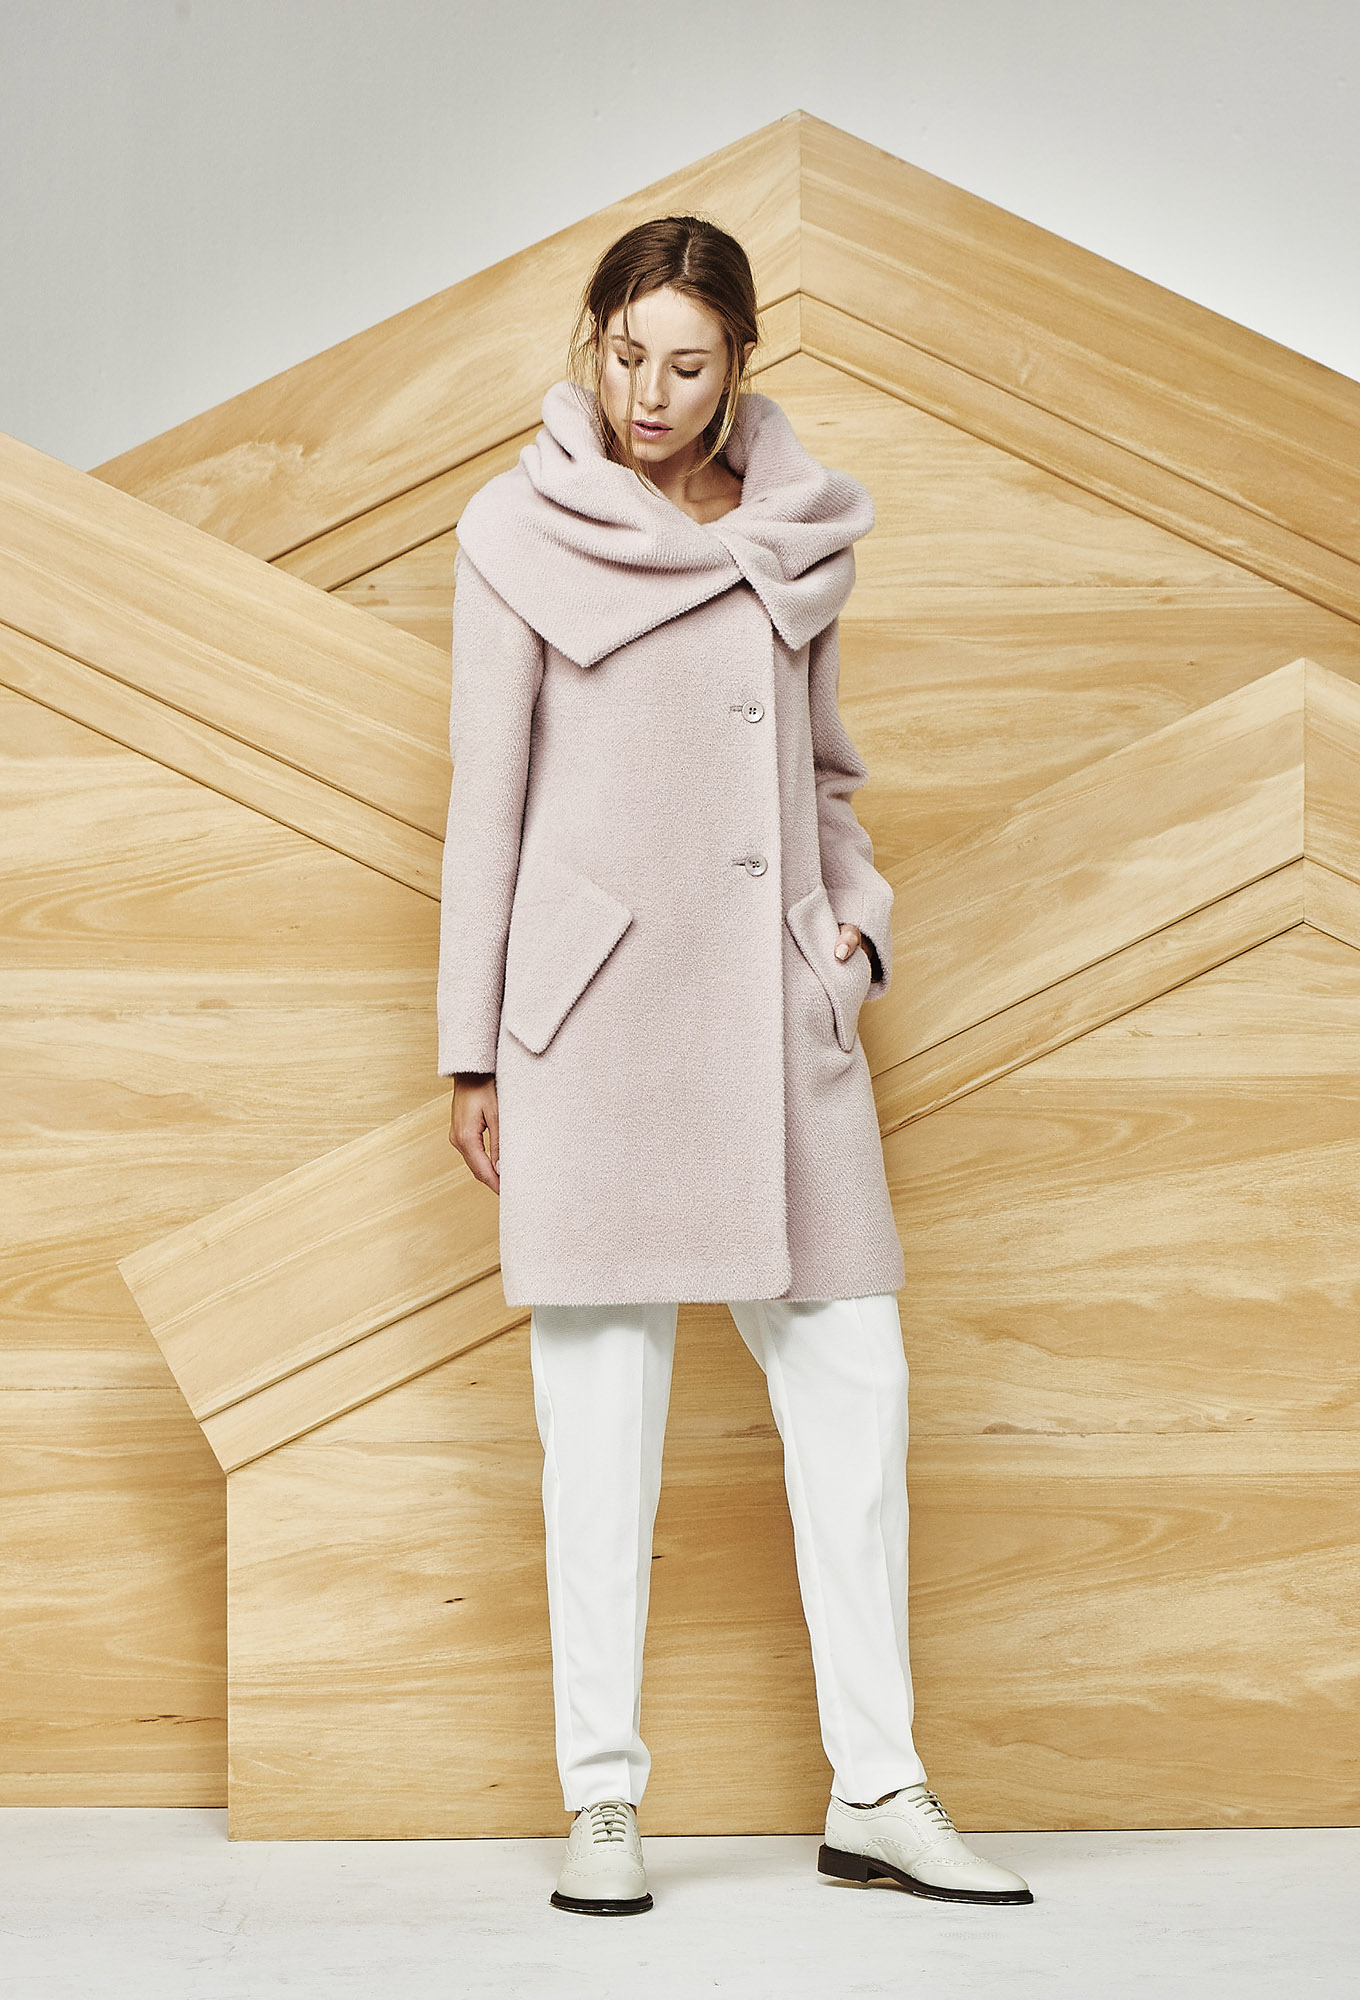 COAT INES AT-297   Colors:  soft rose,  winter white, burgundy, black  Sizes: S, M, L, XL